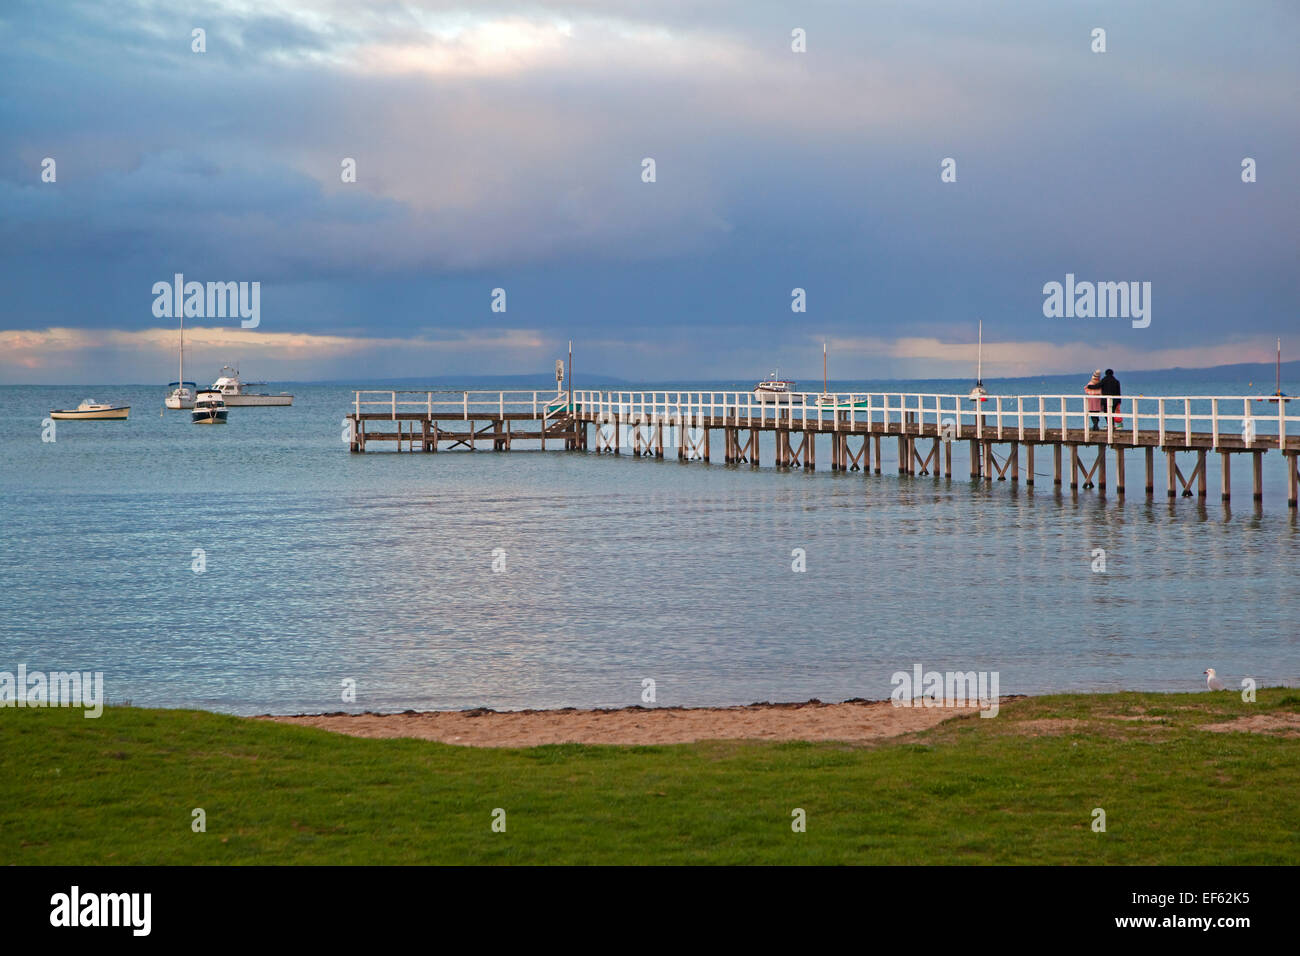 Couple watching sunset from wooden jetty at seaside resort Sorrento in the Port Phillip Bay, Victoria, Australia - Stock Image